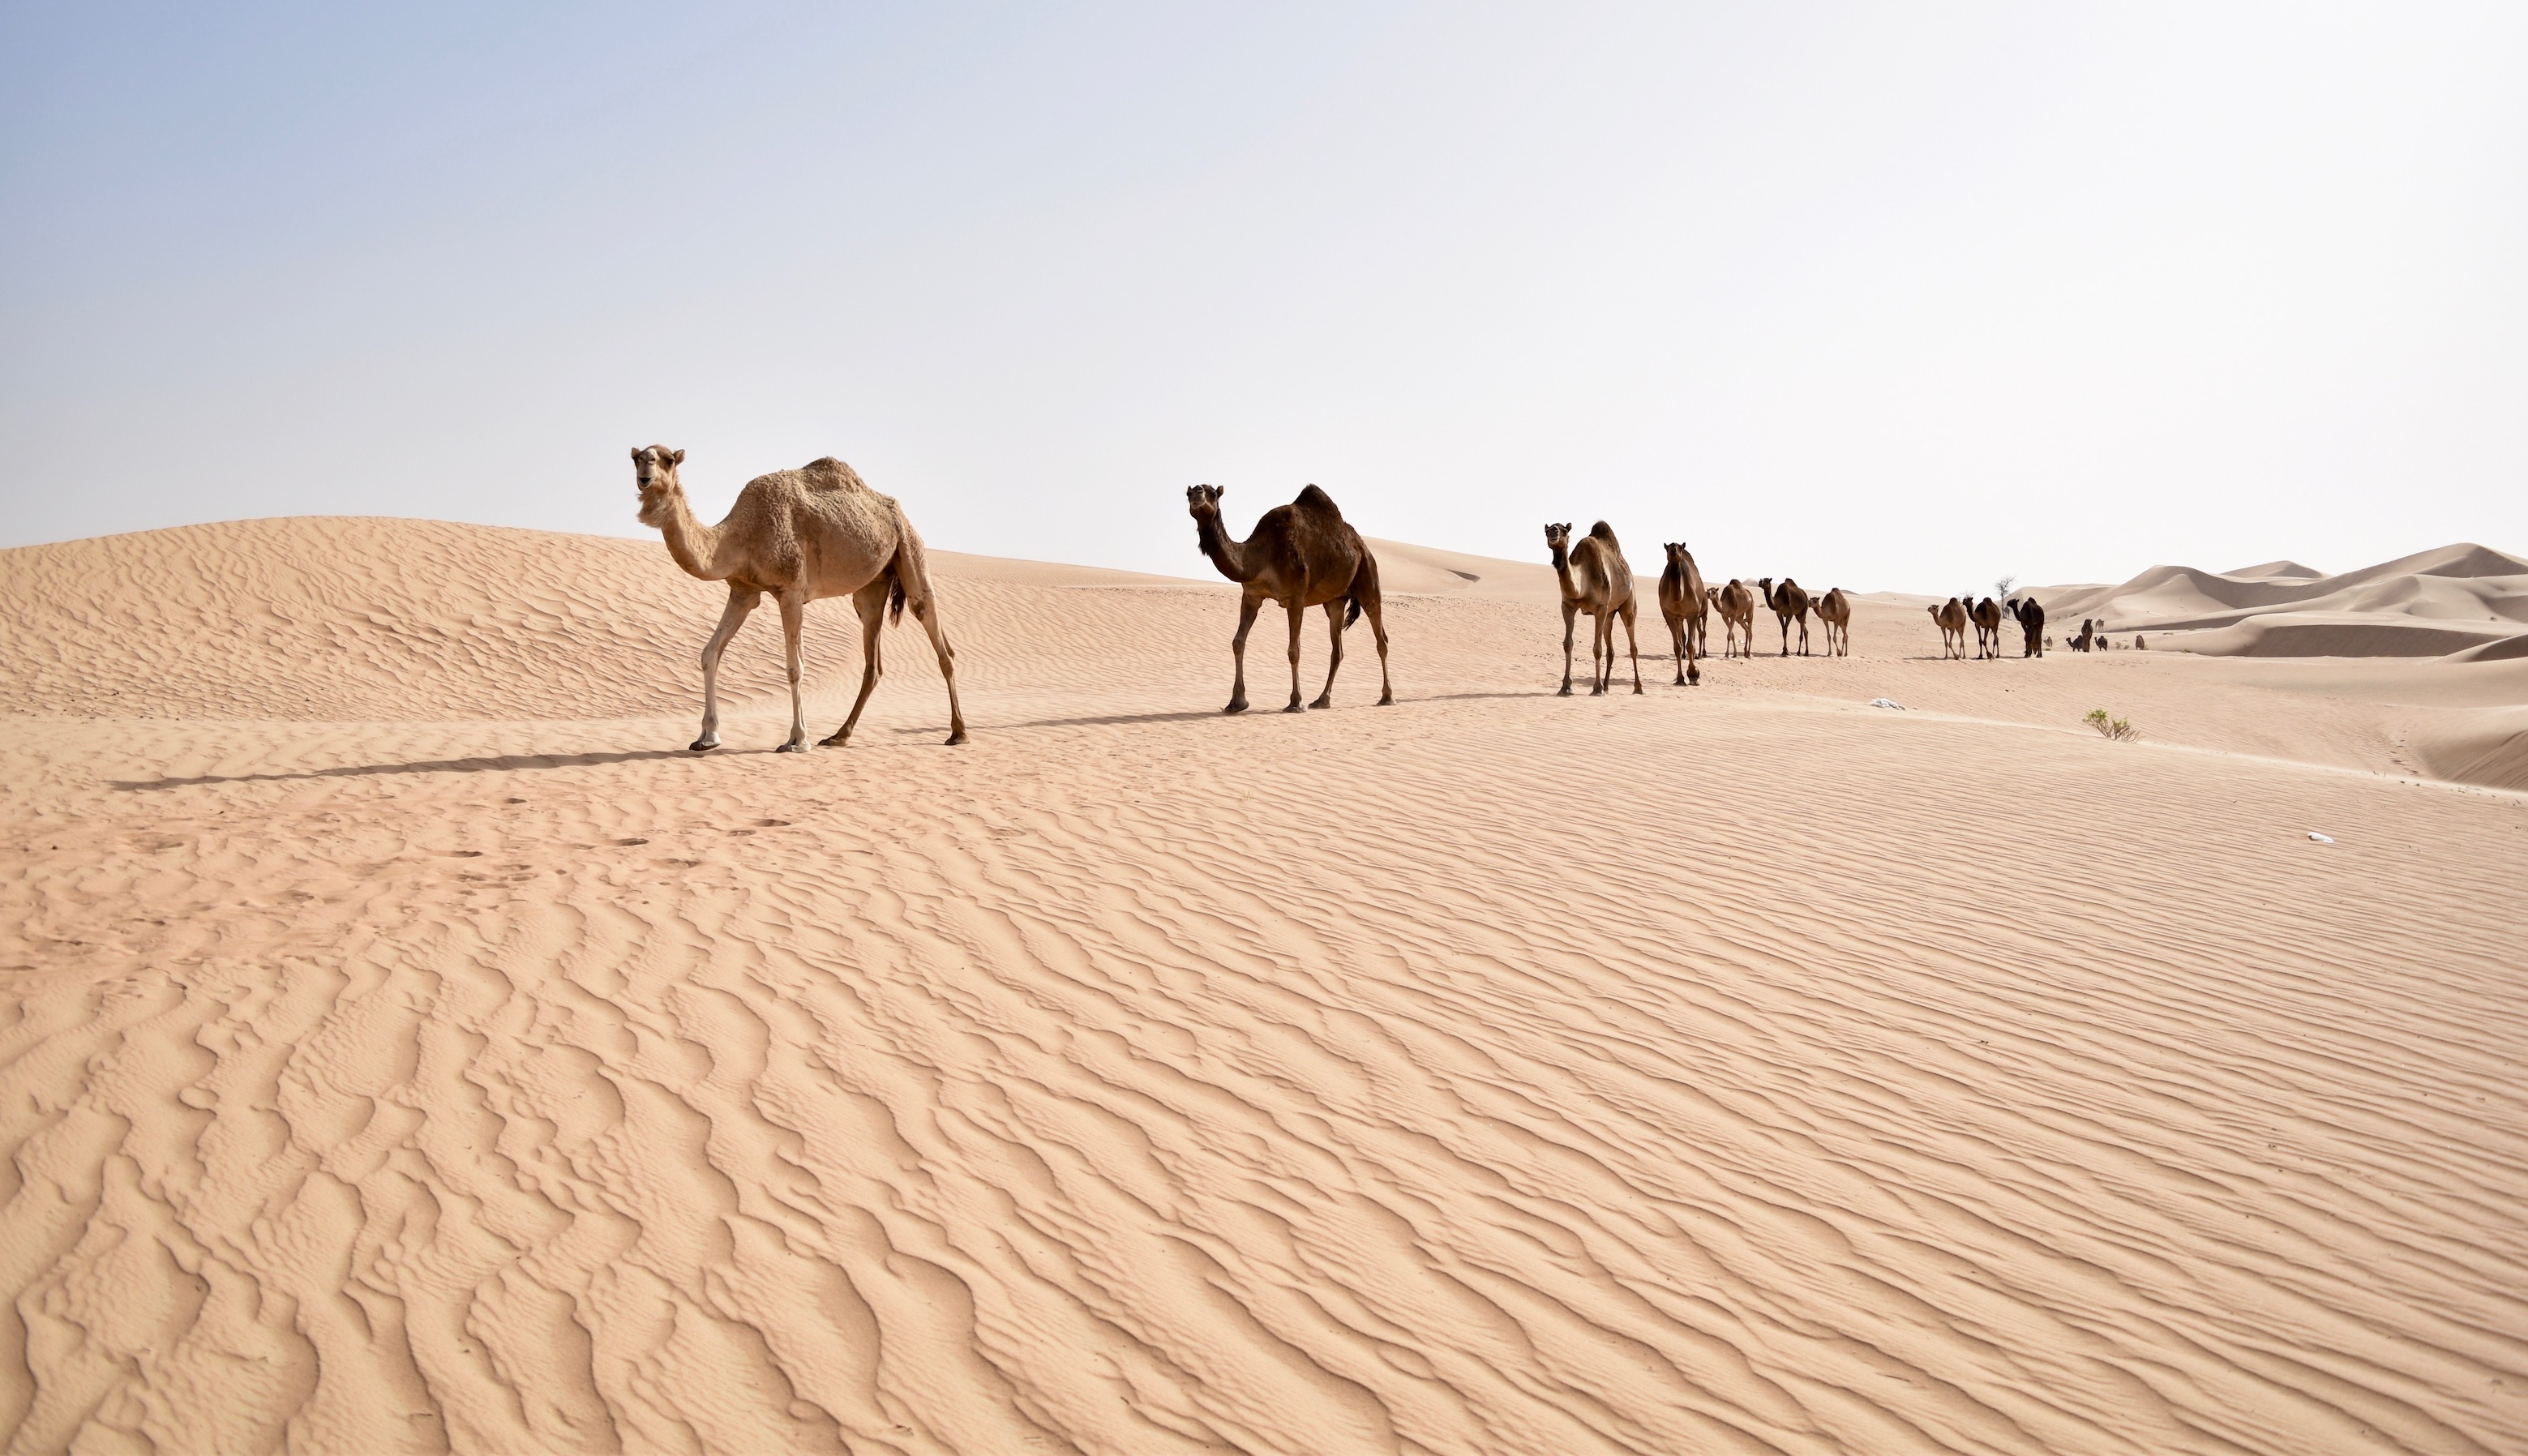 Camels, dune bashing and star gazing: How to get the most out of Abu Dhabi's desert